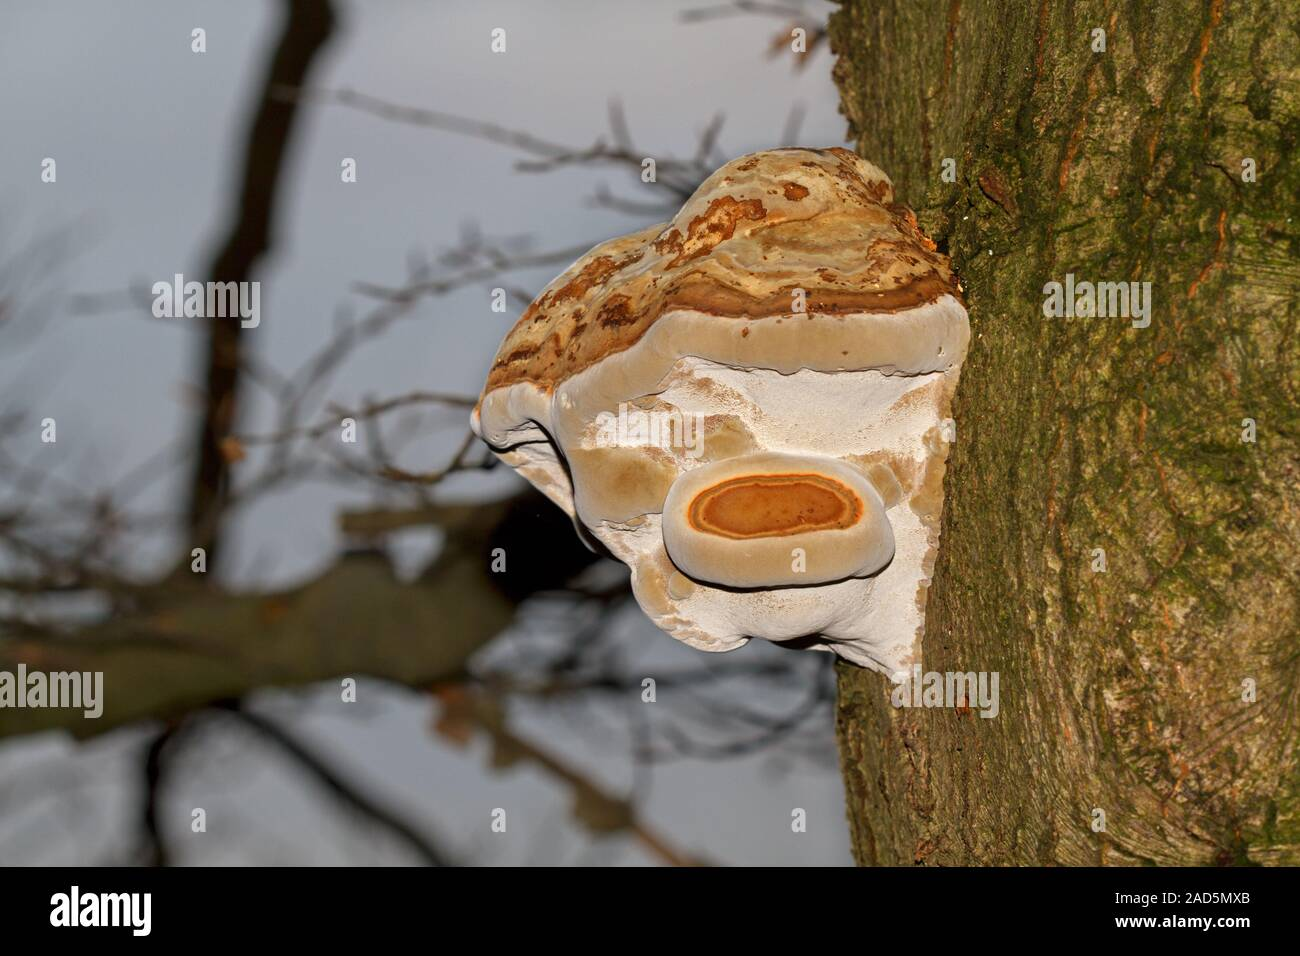 A woody Beeswax bracket fungus, also called conk, on the bark of a dying Oak tree Stock Photo